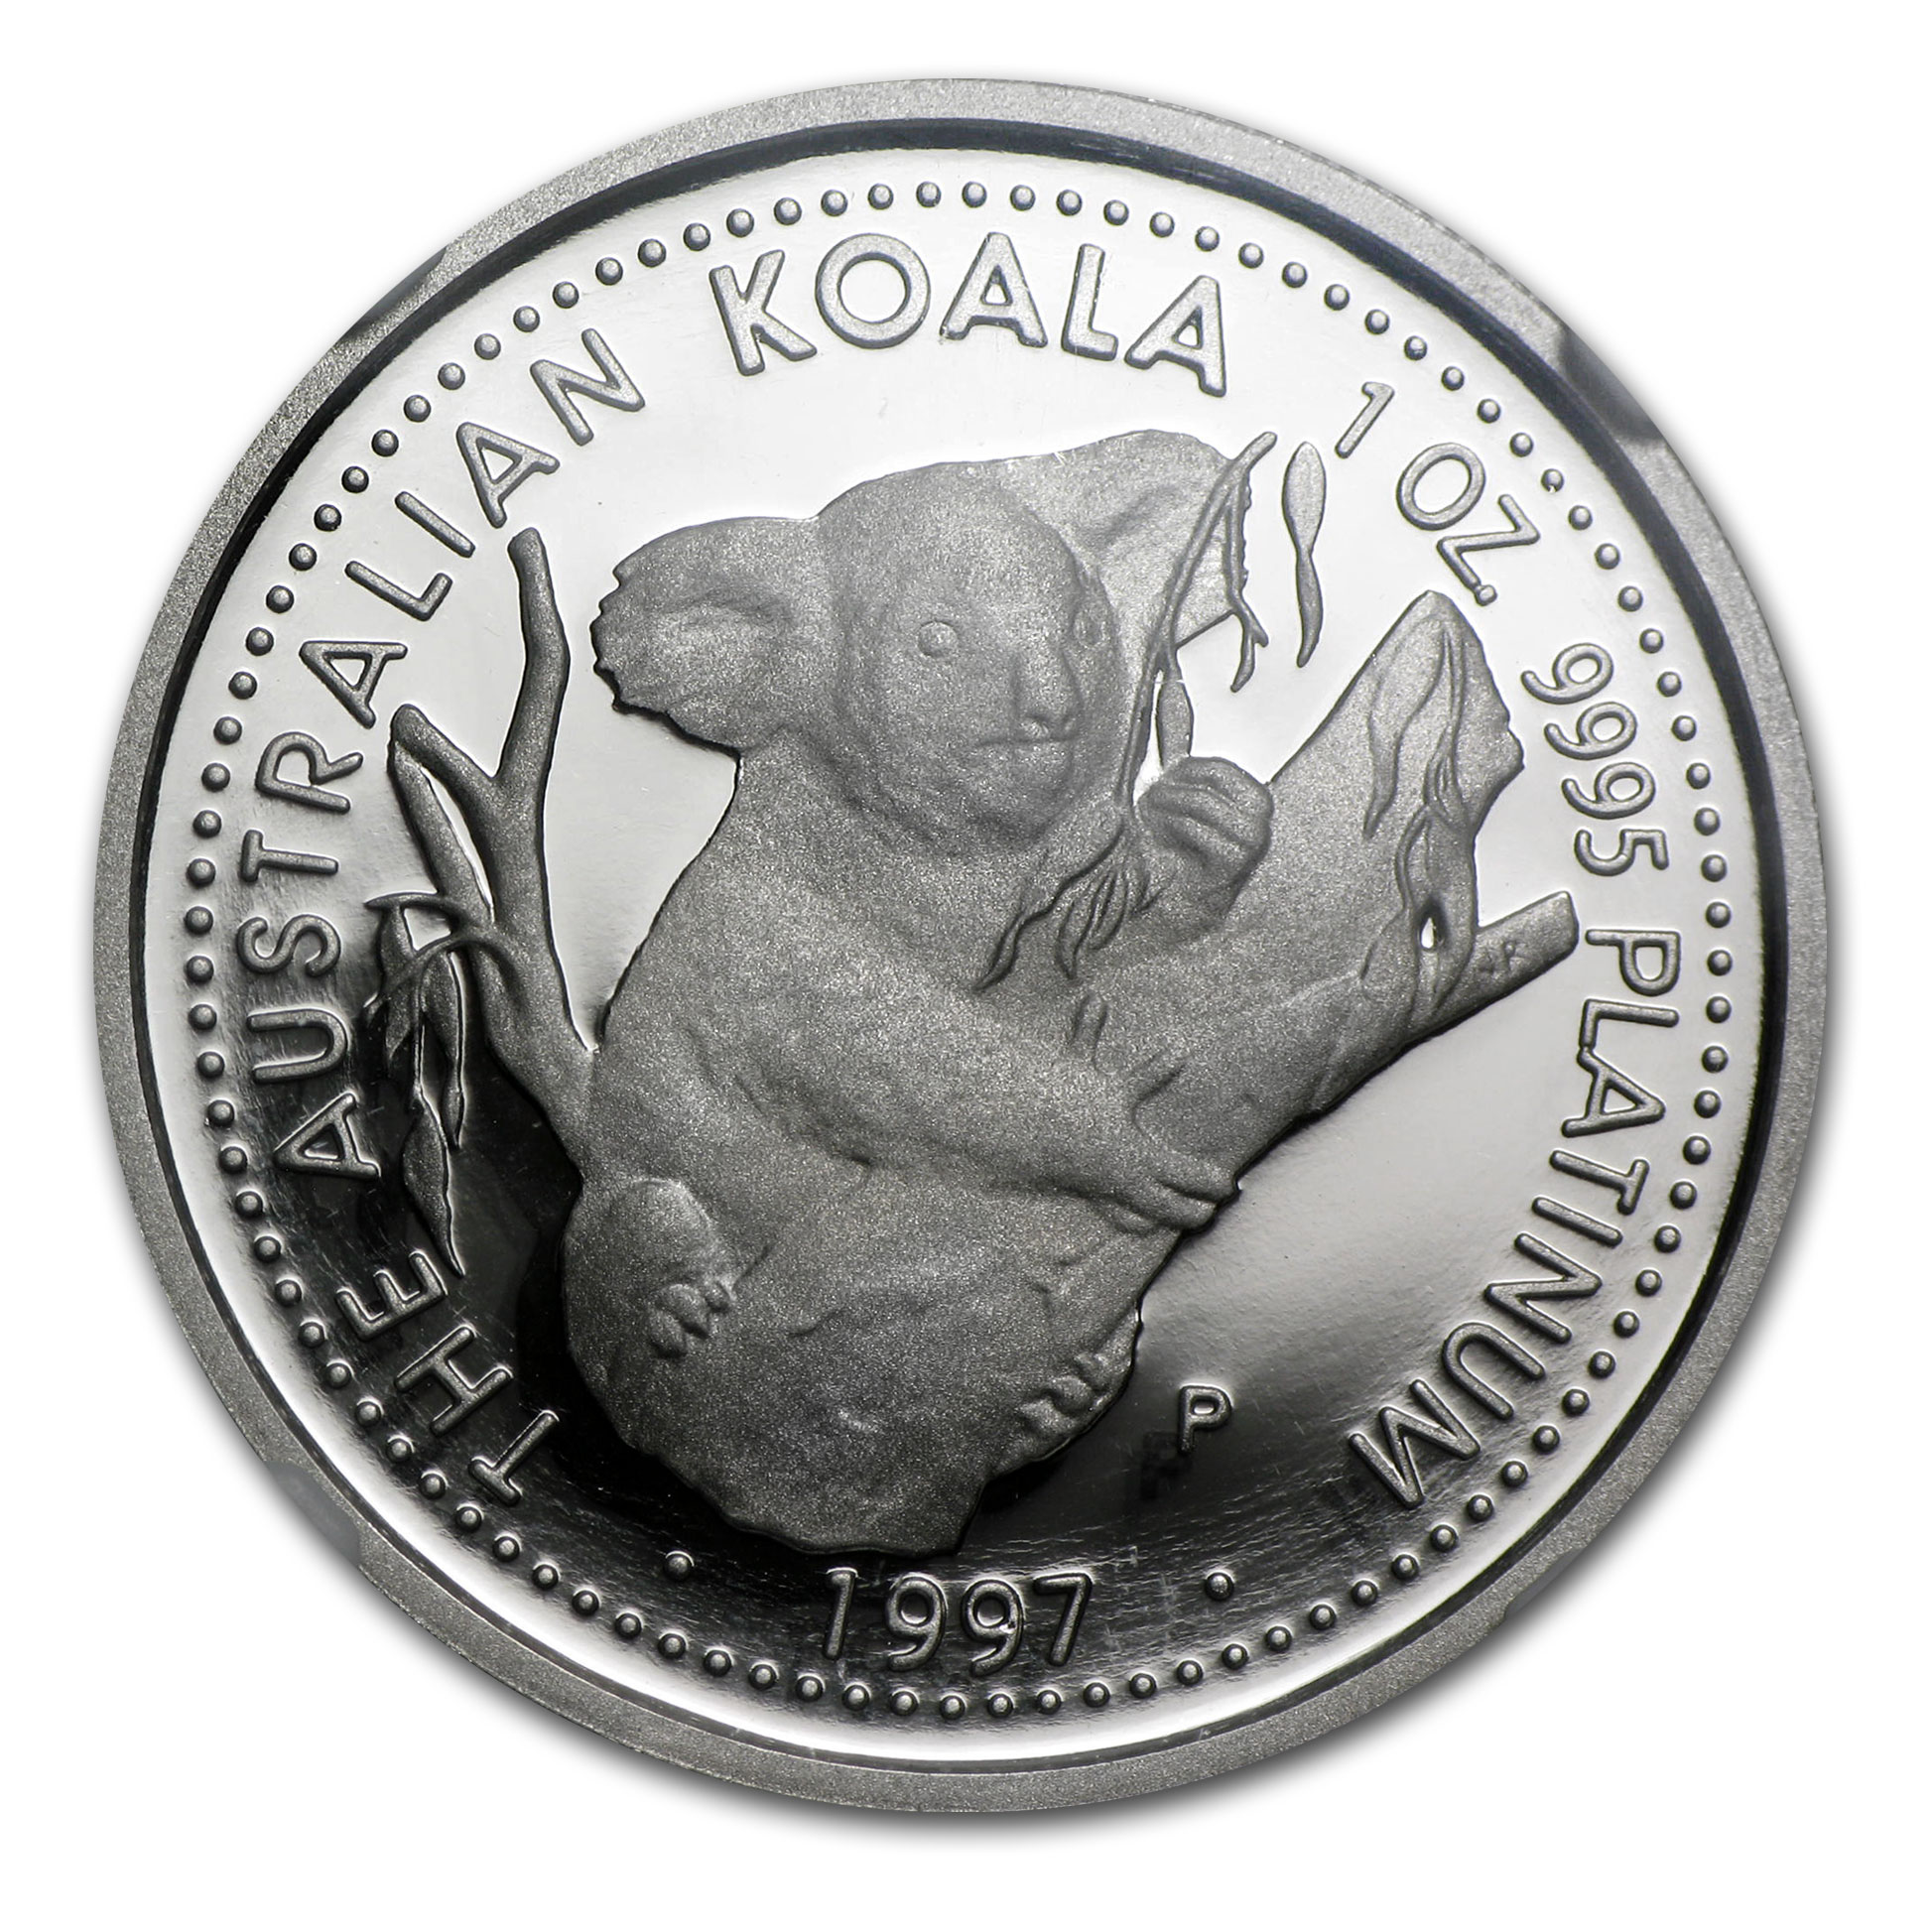 1997 Australia 1 oz Proof Platinum Koala PF-70 NGC